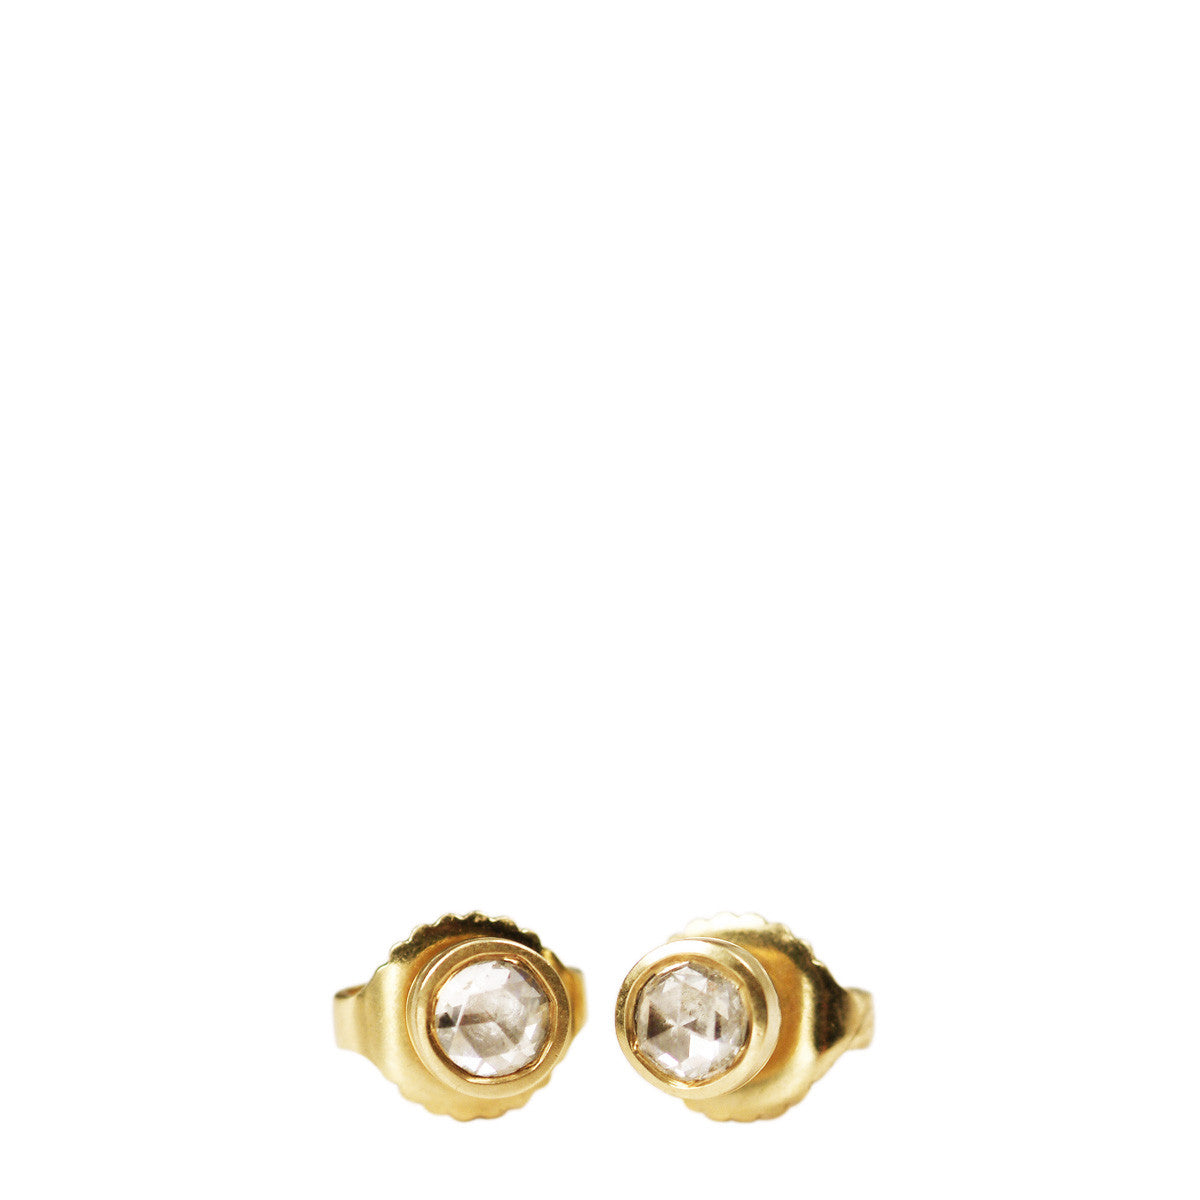 18K Gold 3mm Diamond Stud Earrings